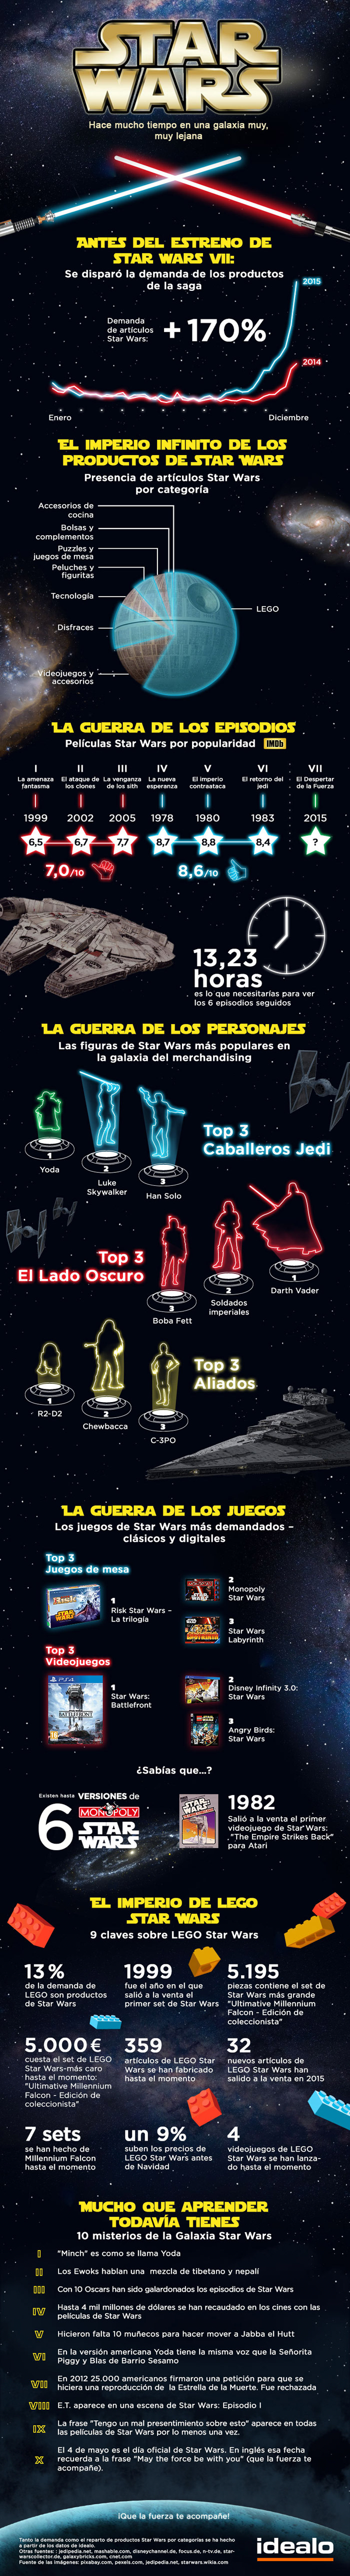 Infografia-e-commerce-Star-Wars